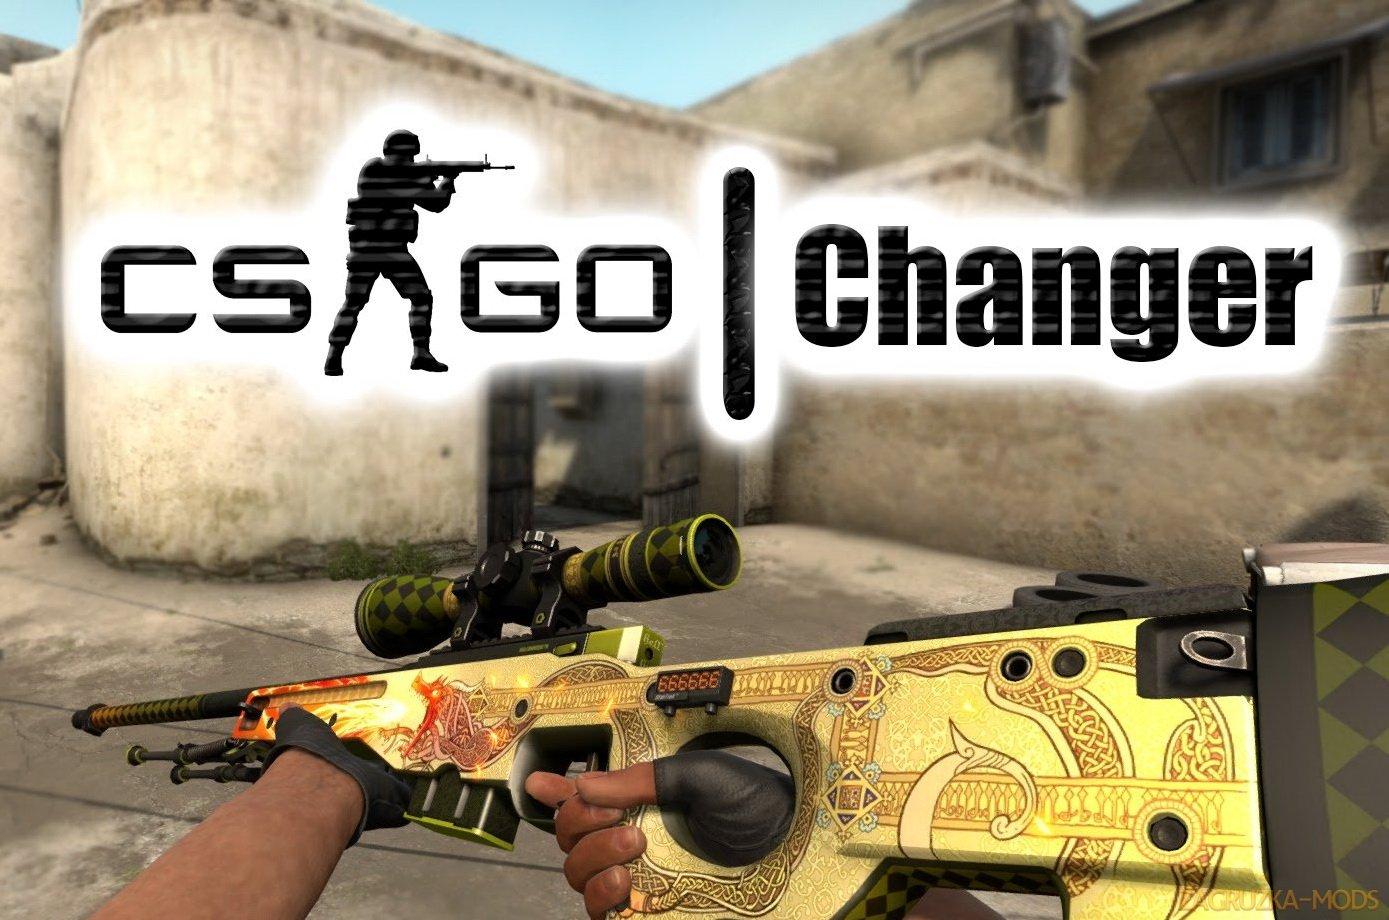 CS GO Weapon Skin Changer v3.4 for CS:GO